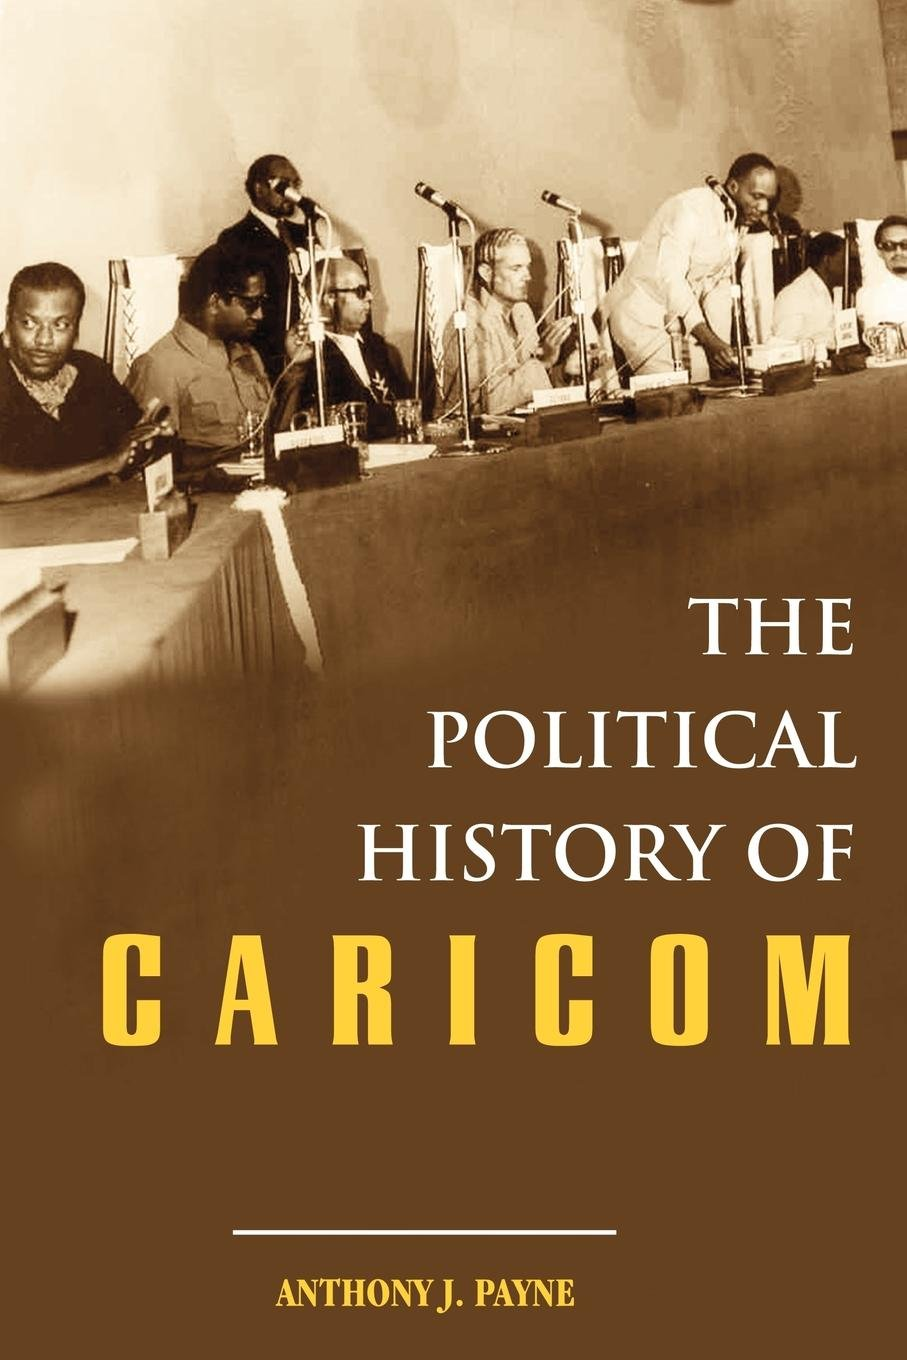 Download The Political History of CARICOM PDF